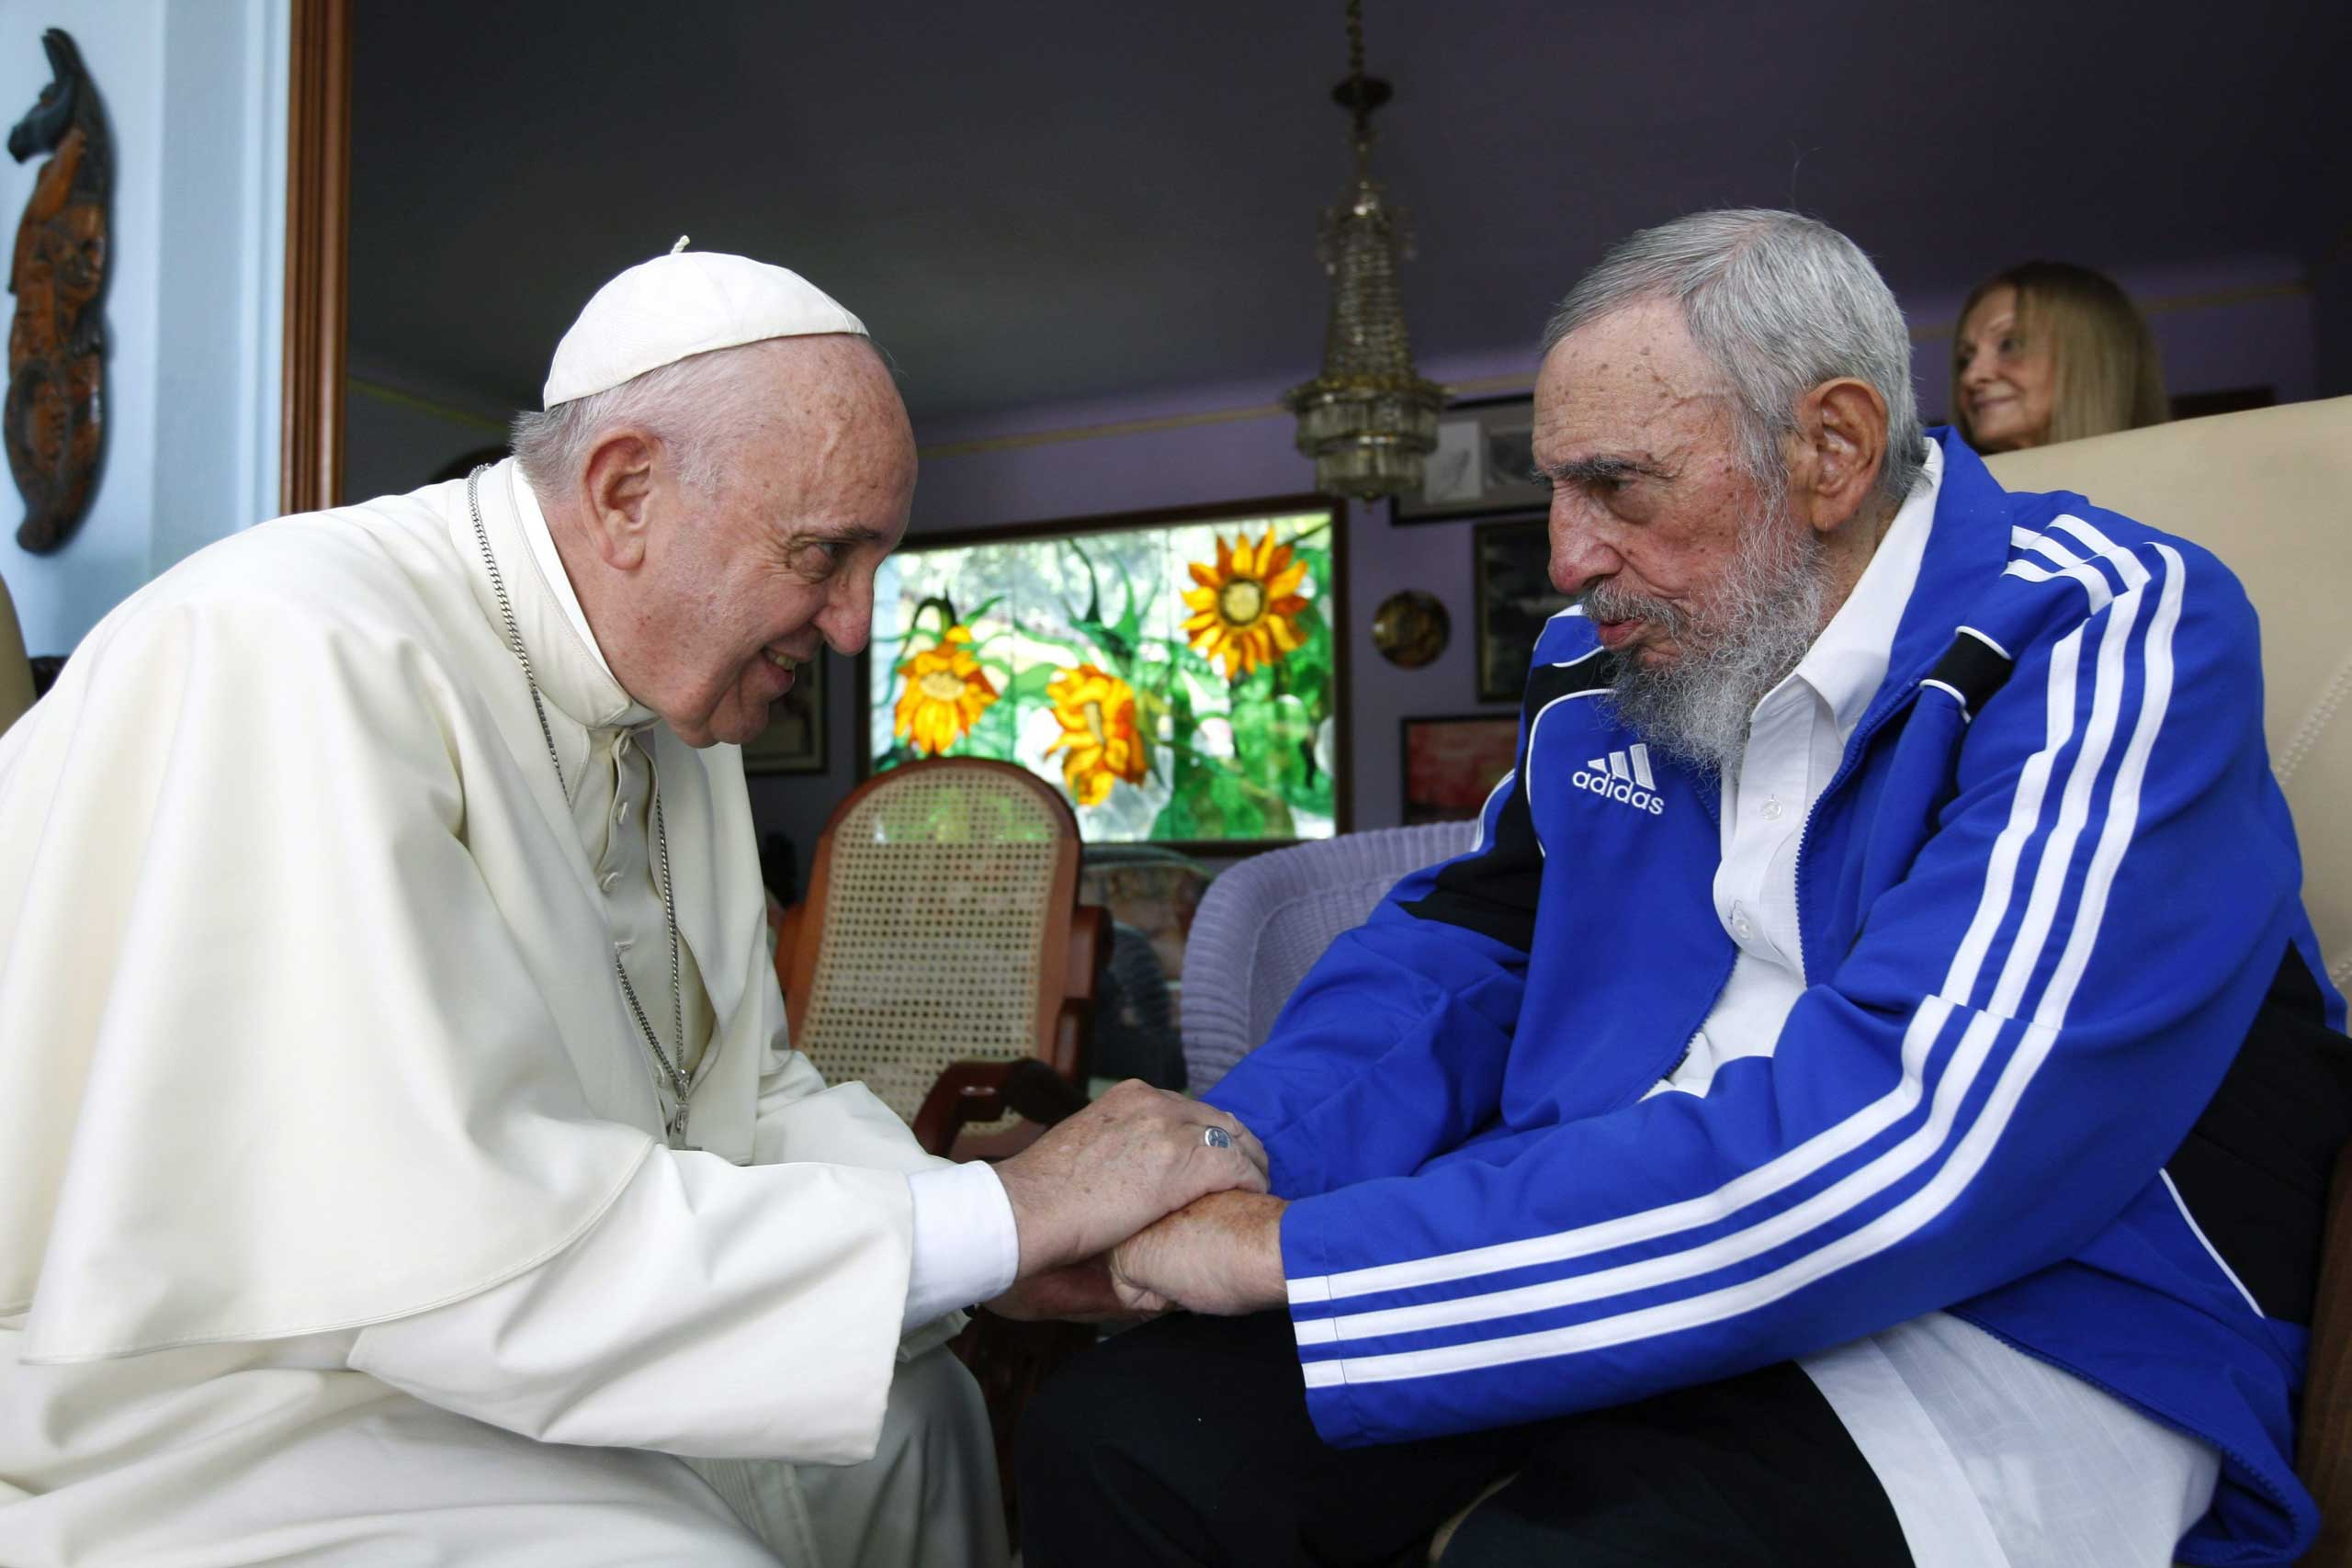 Pope Francis and former President of Cuba Fidel Castro during their meeting at Castro's residence in Havana, on Sept. 20, 2015.